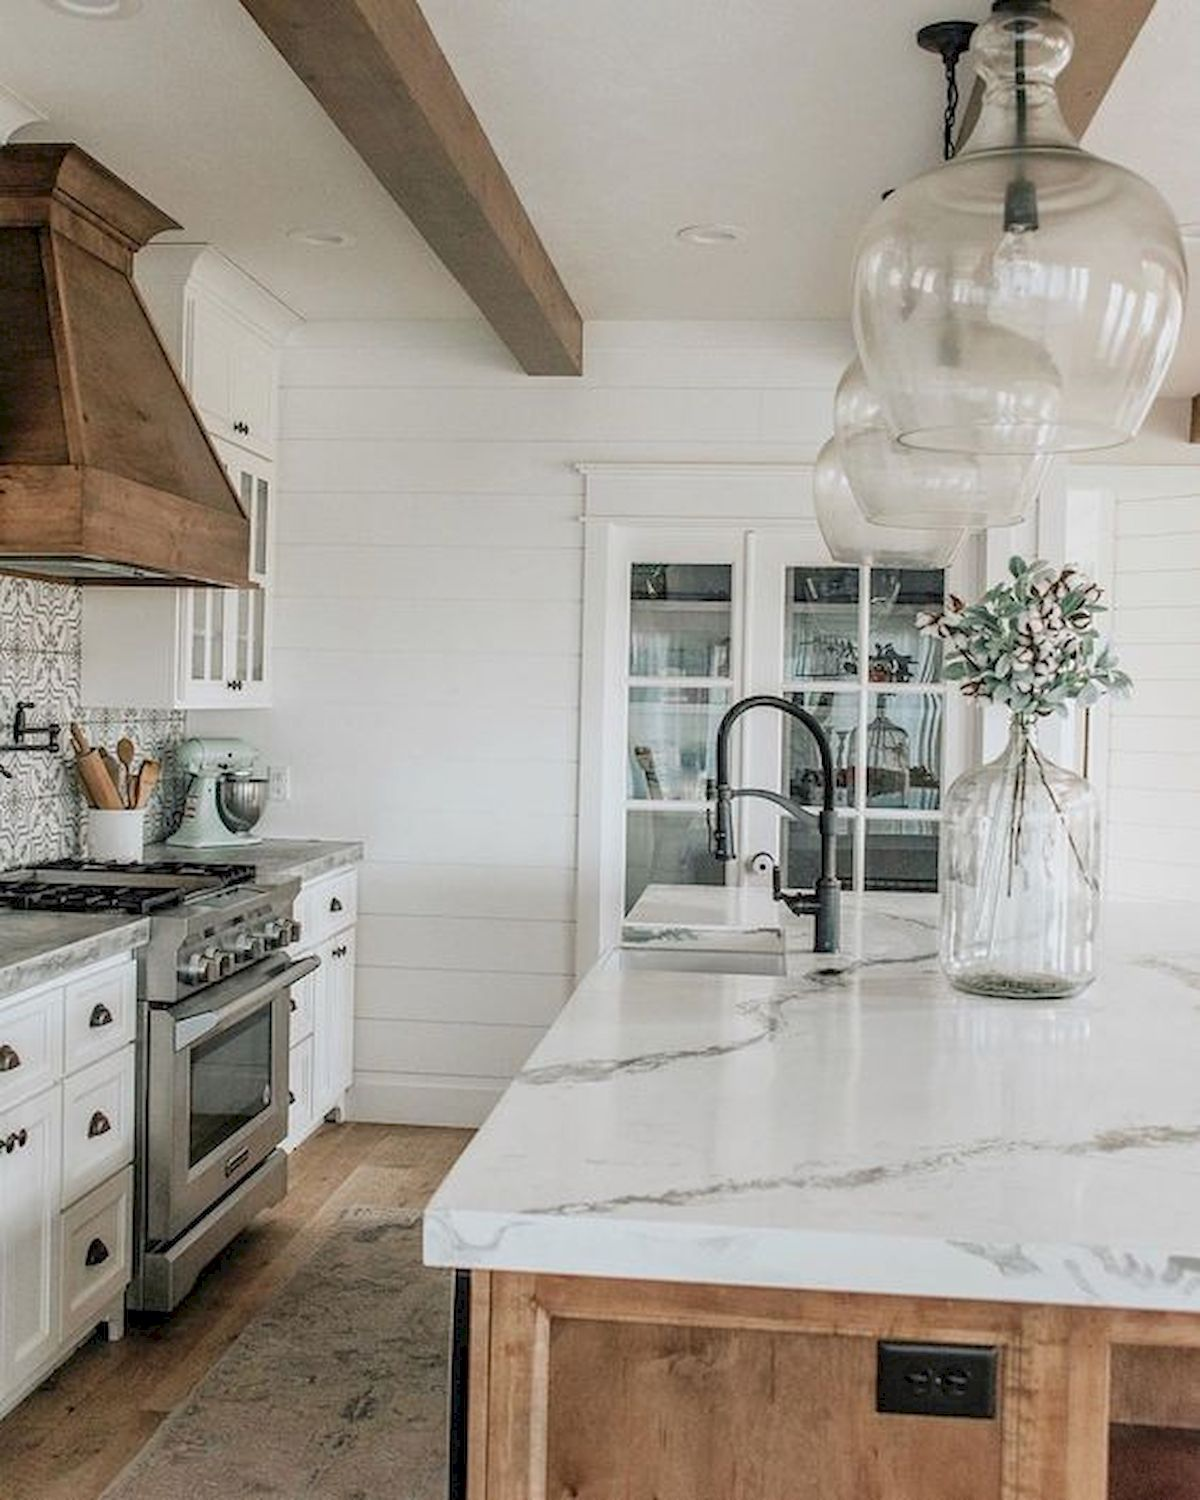 60 Great Farmhouse Kitchen Countertops Design Ideas And Decor - Googodecor